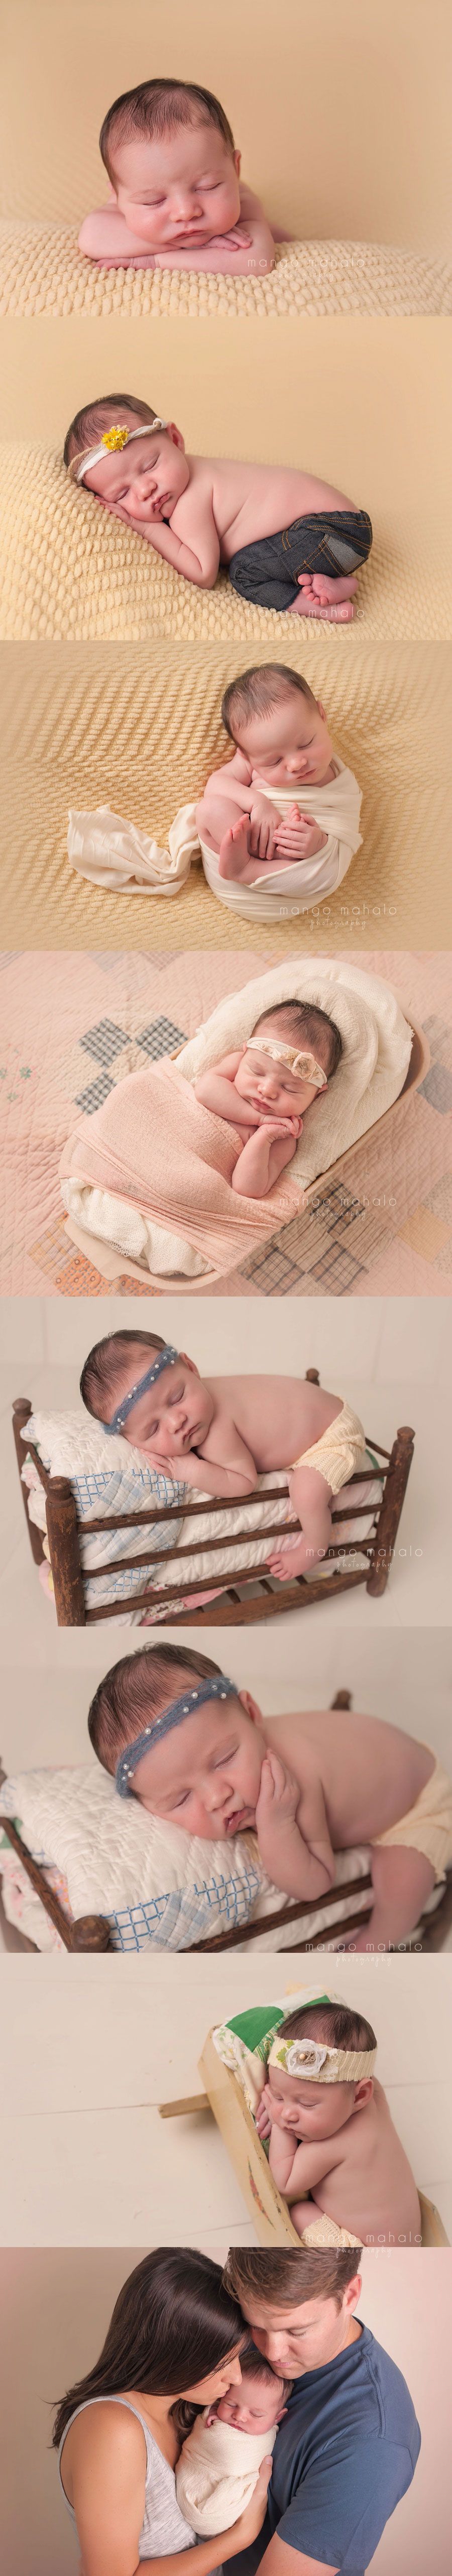 Knoxville Newborn Photographer   Mango Mahalo Photography by Michelle Anderson